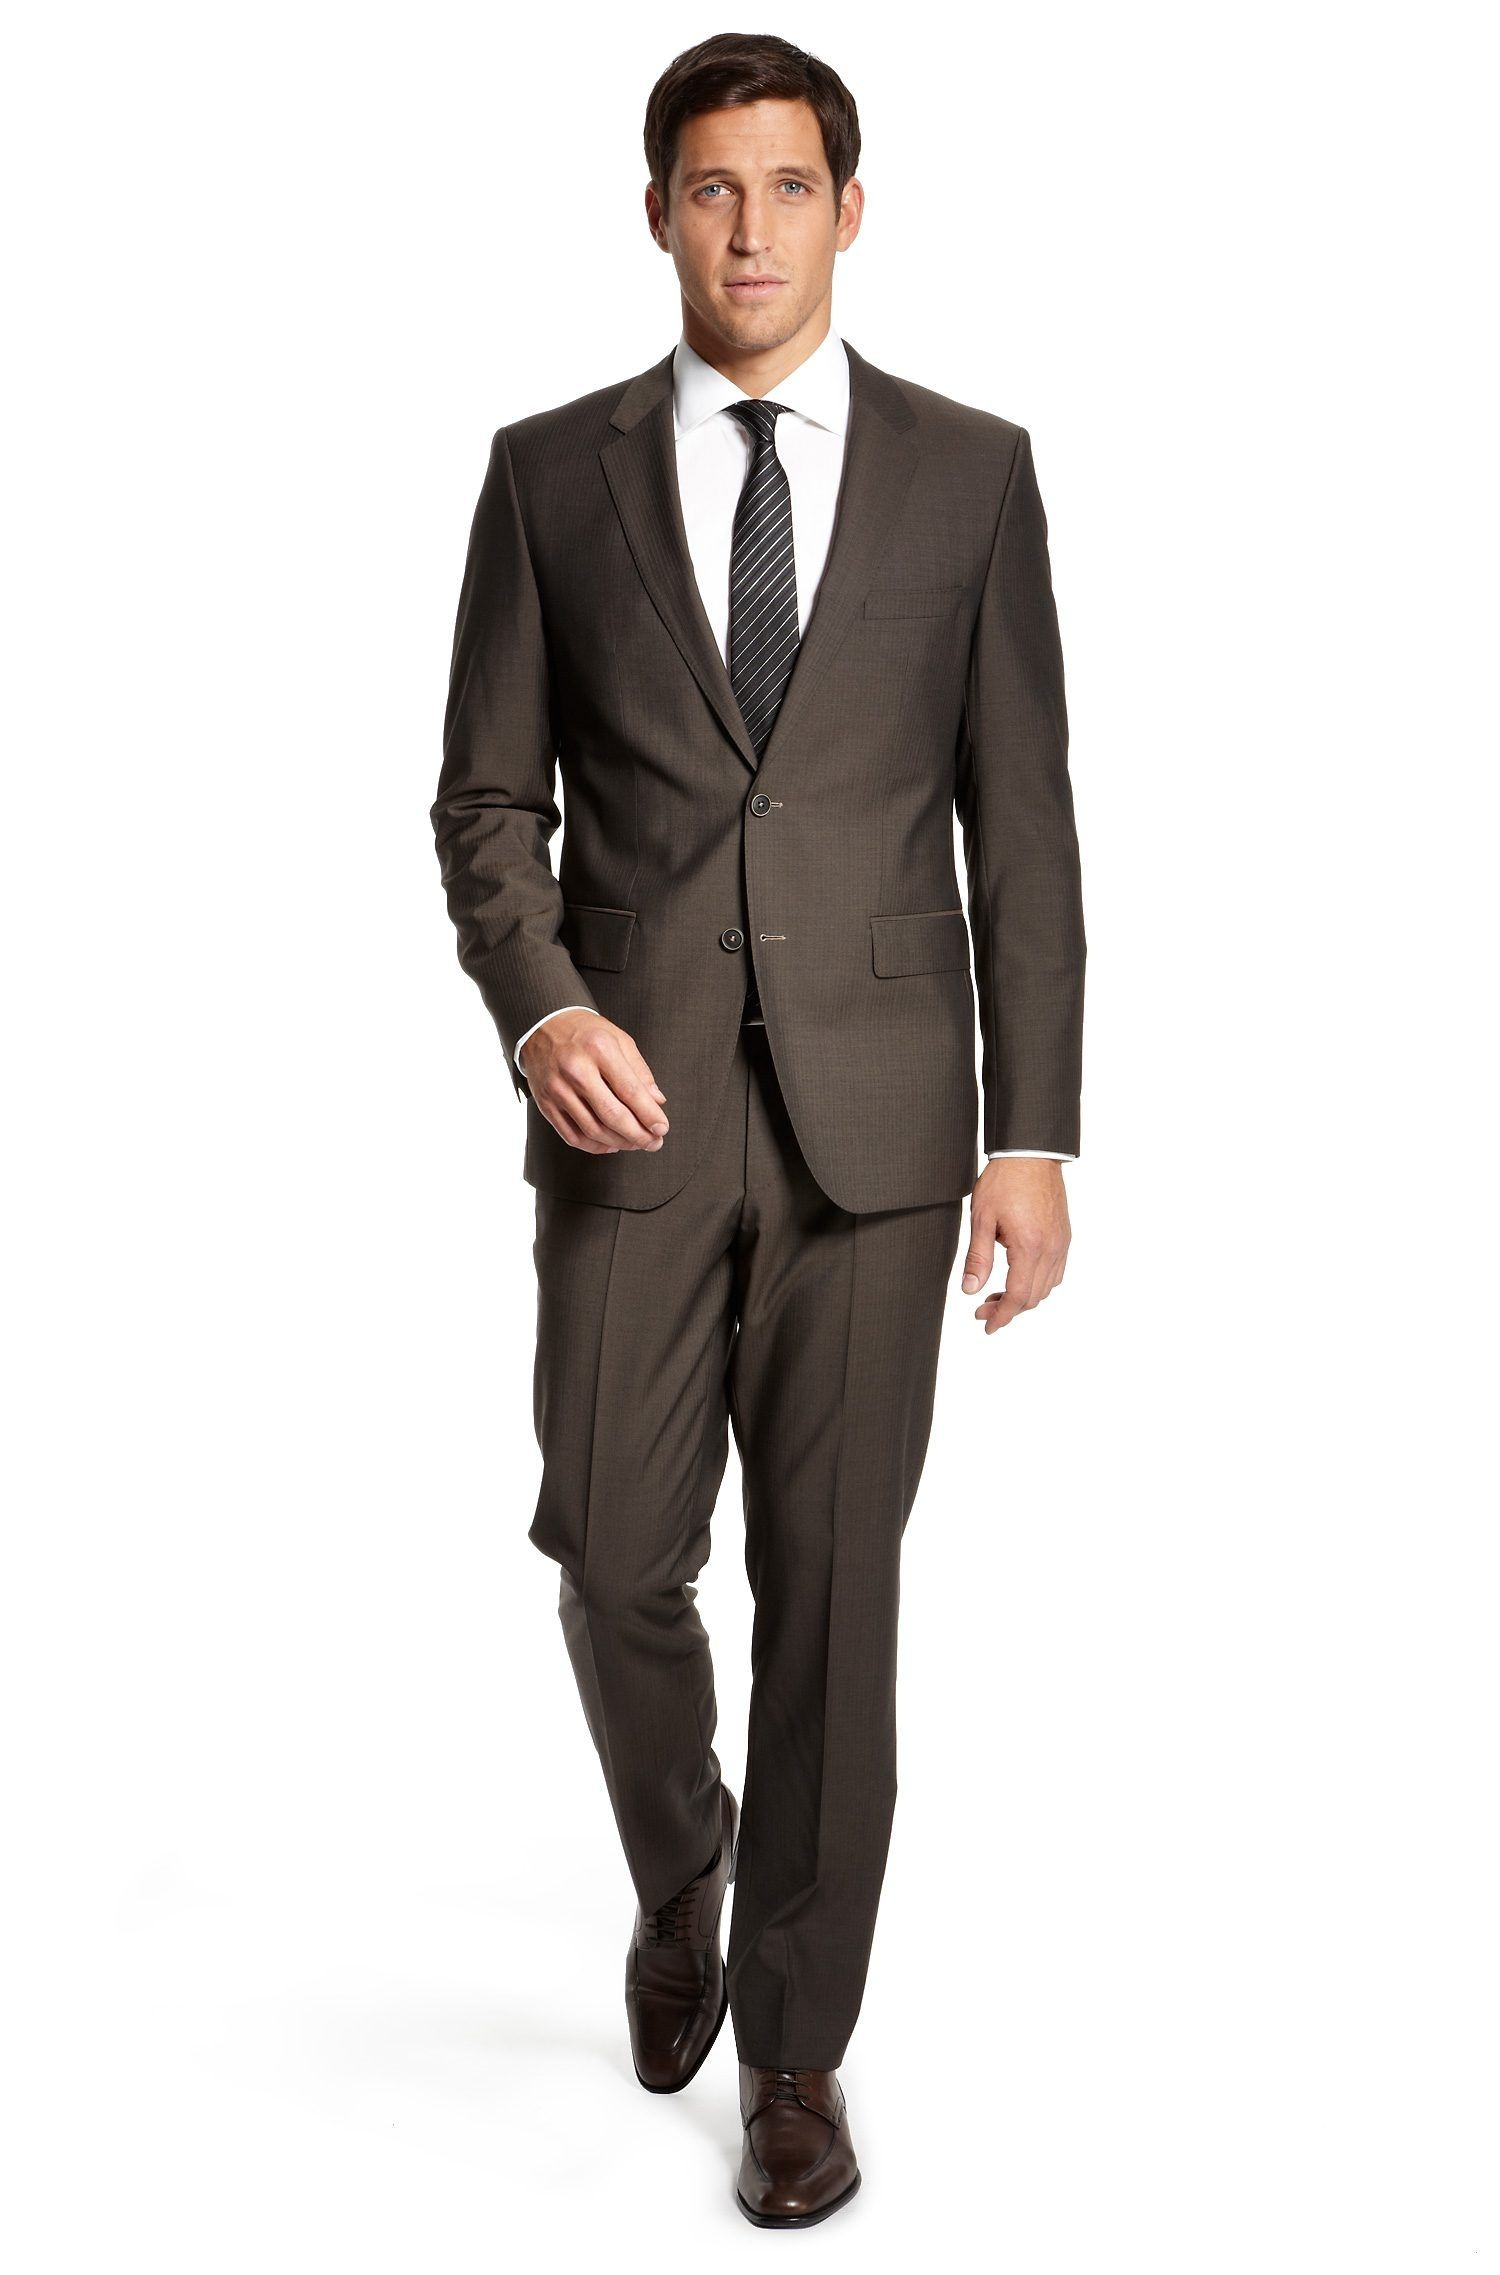 d7ff4ee84a0 The Brown Suit  Less common